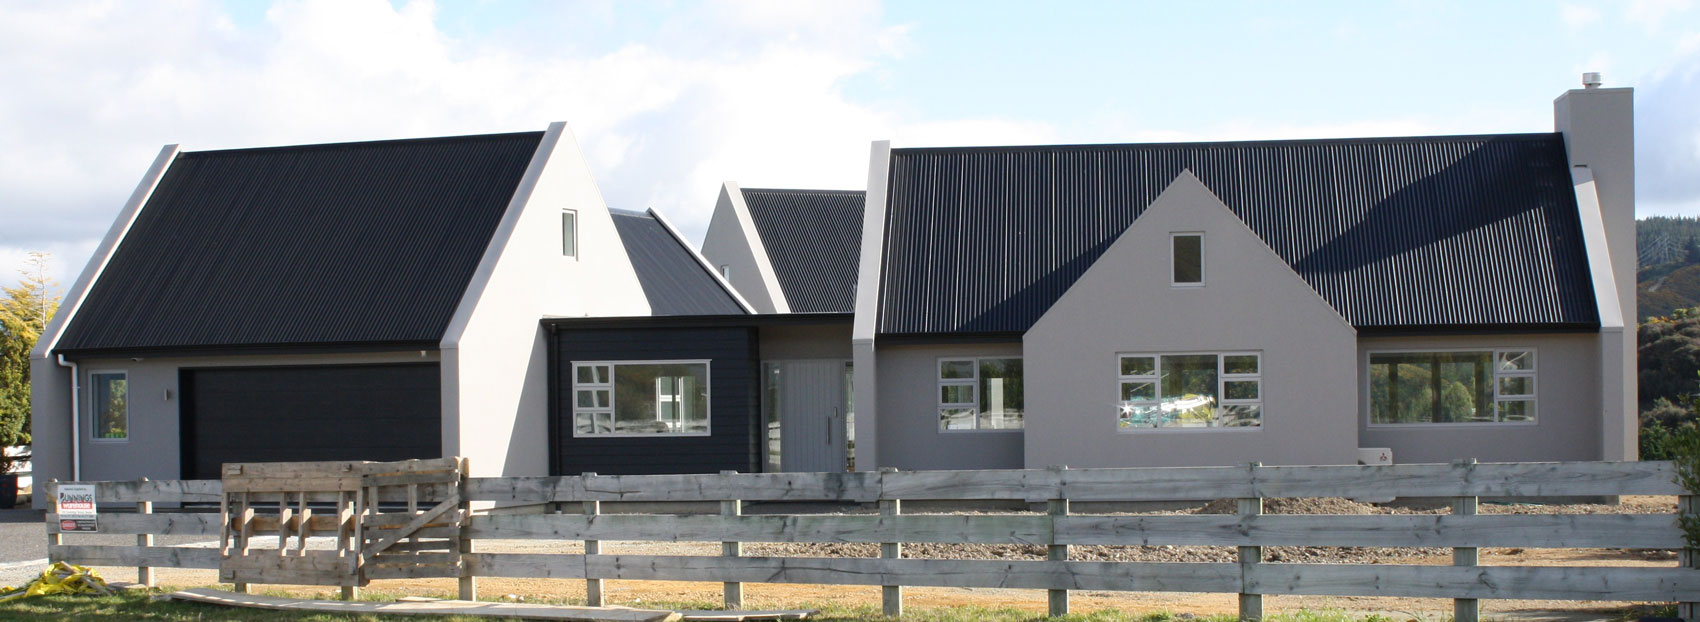 Sample - Roofing and Coating Systems Ltd Wellington